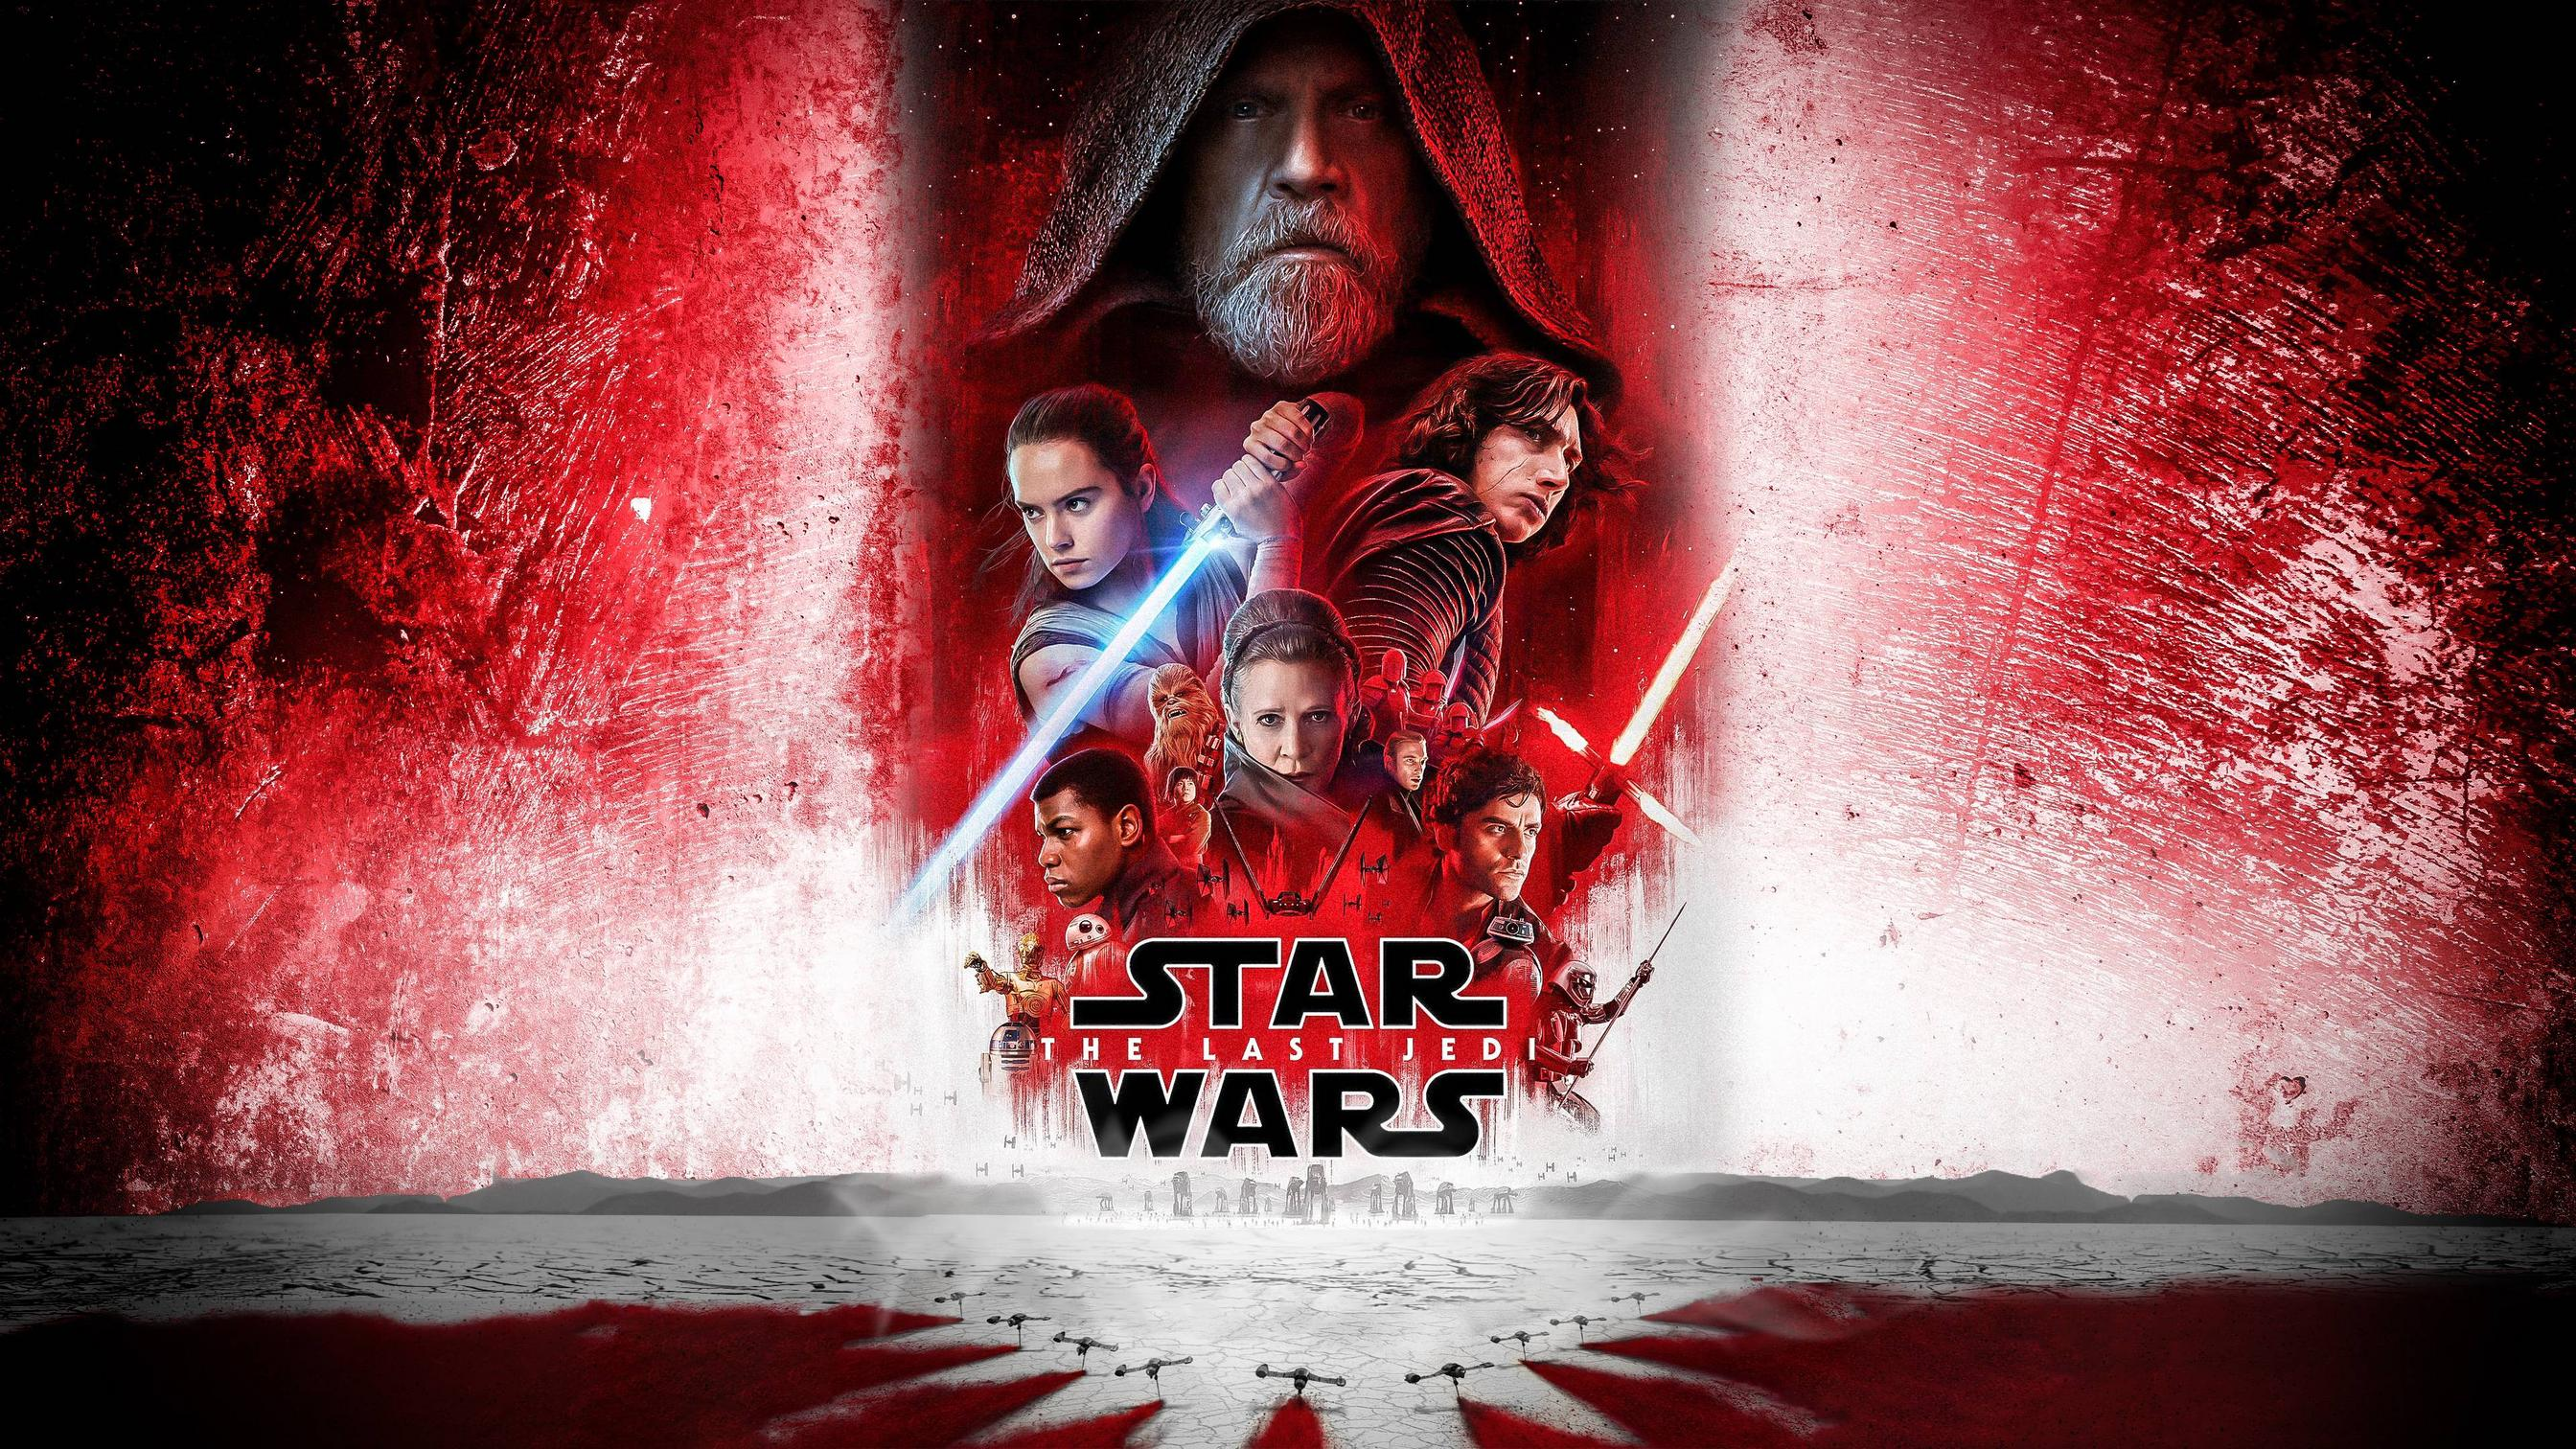 Star Wars: The Last Jedi review [Spoiler free]